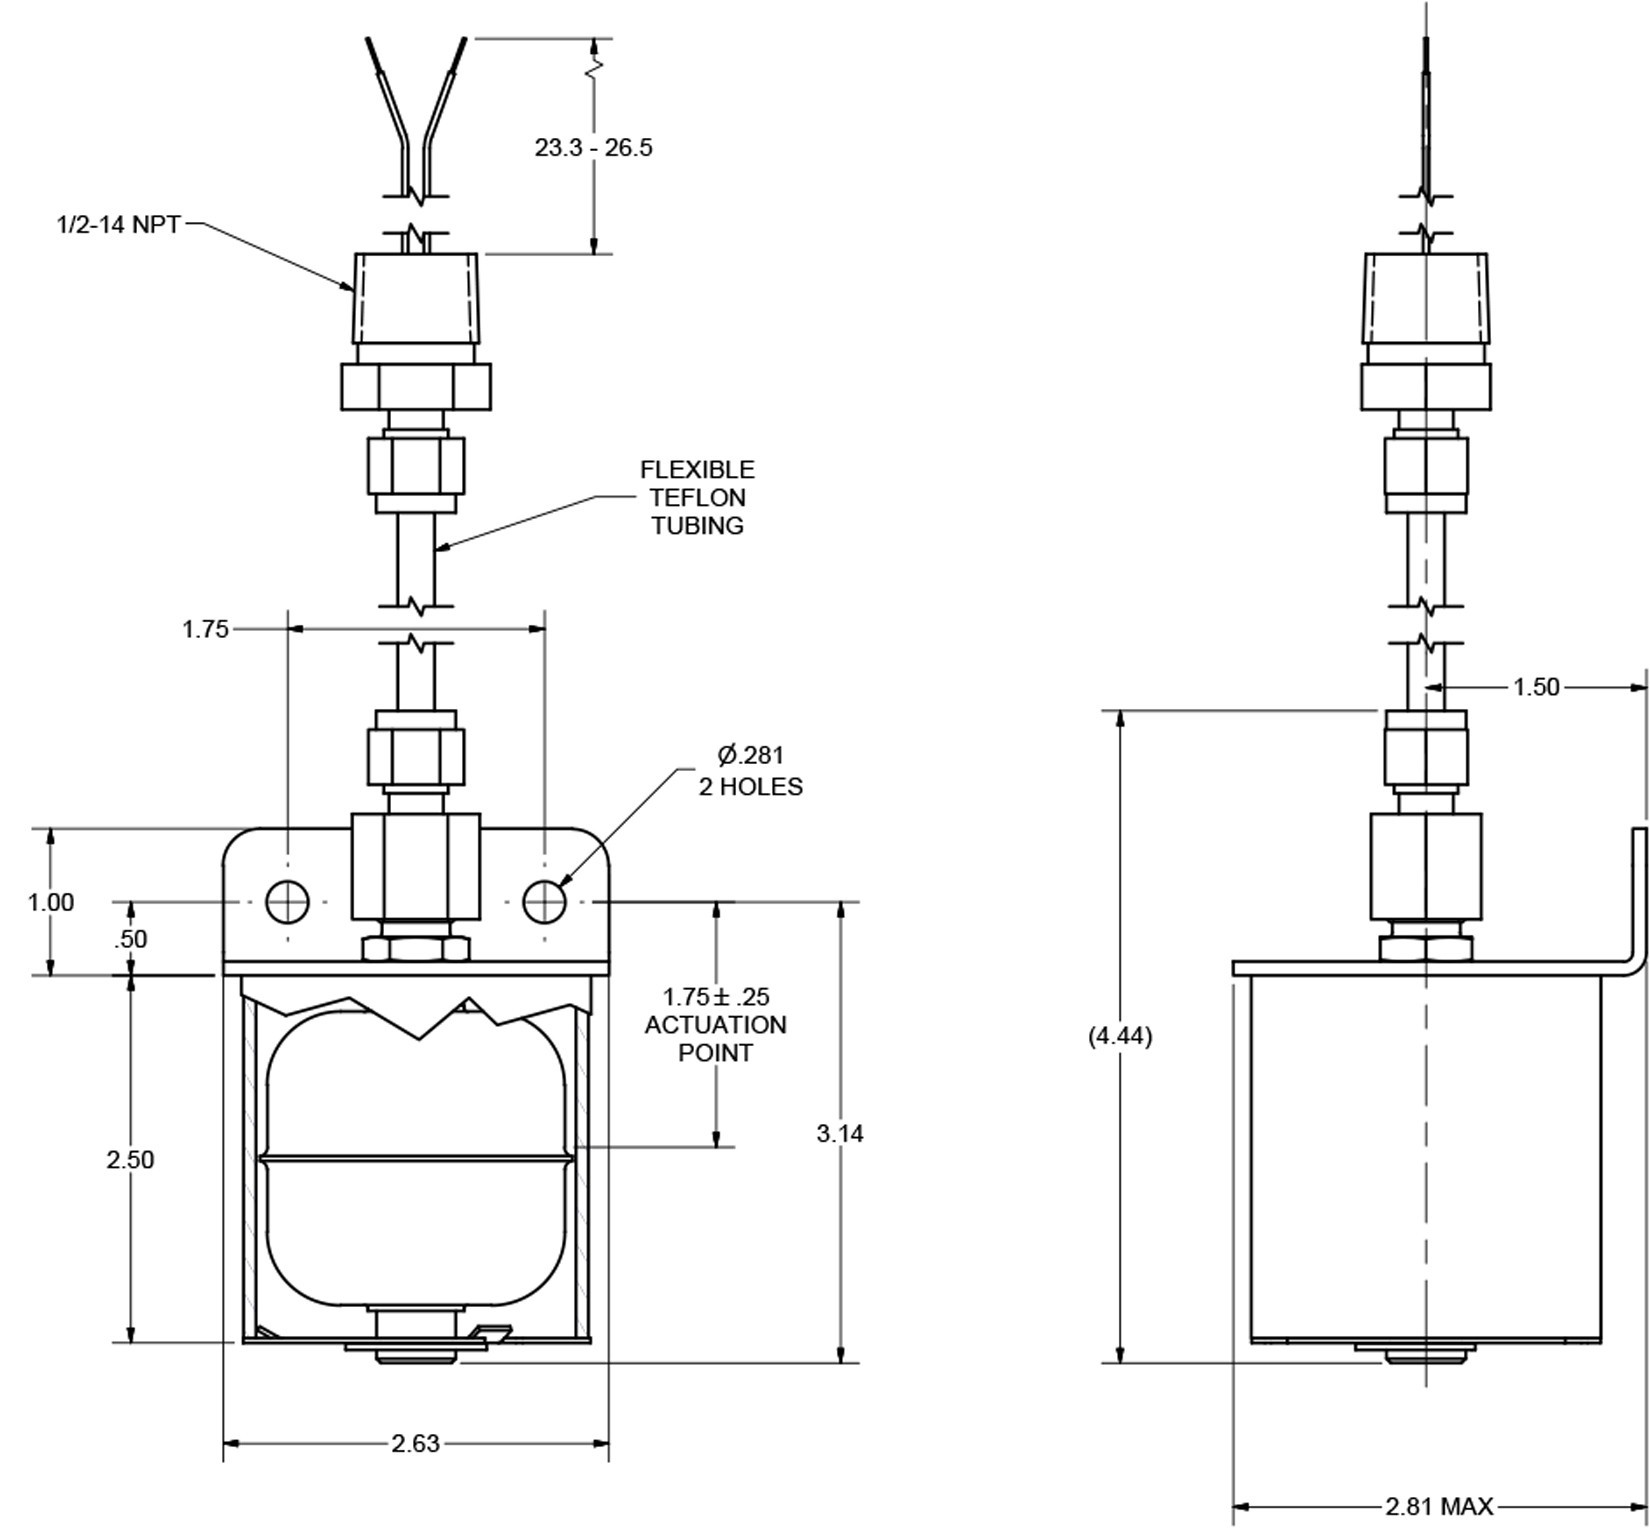 Wiring Diagram for Float Switch Save Bracket Mount Stainless Steel Full Size Float Switch